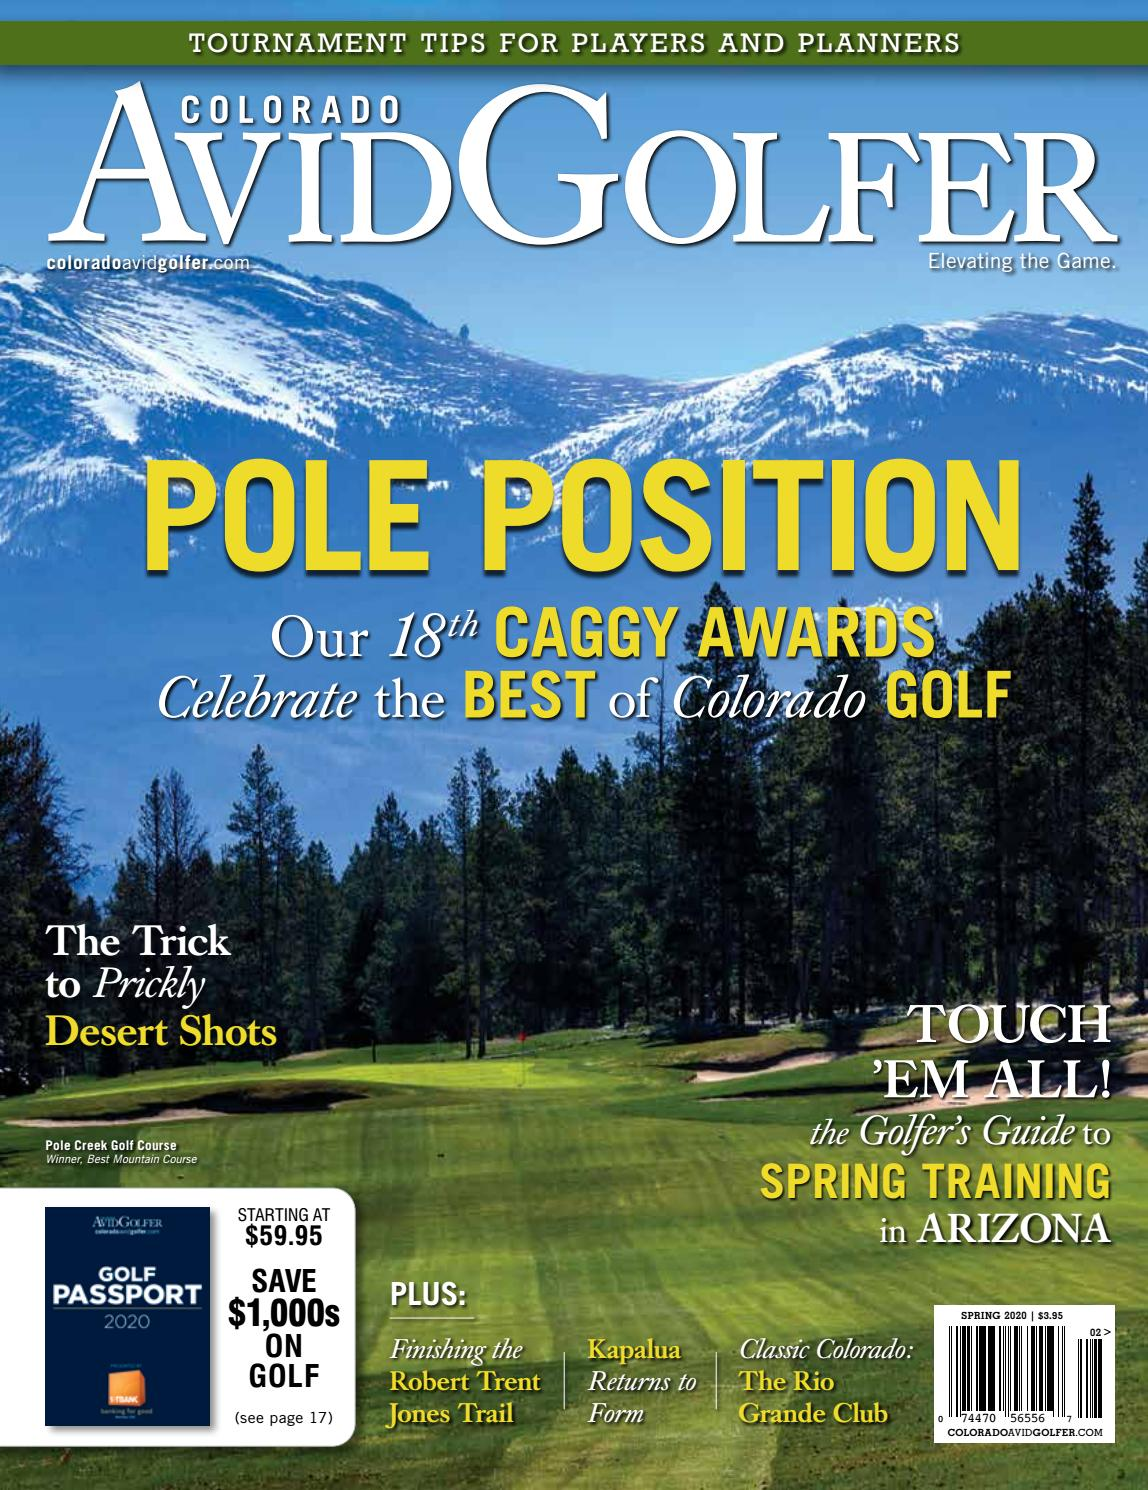 2020 Spring Colorado Avidgolfer Magazine By Colorado Avidgolfer Issuu The official website of the mrs. 2020 spring colorado avidgolfer